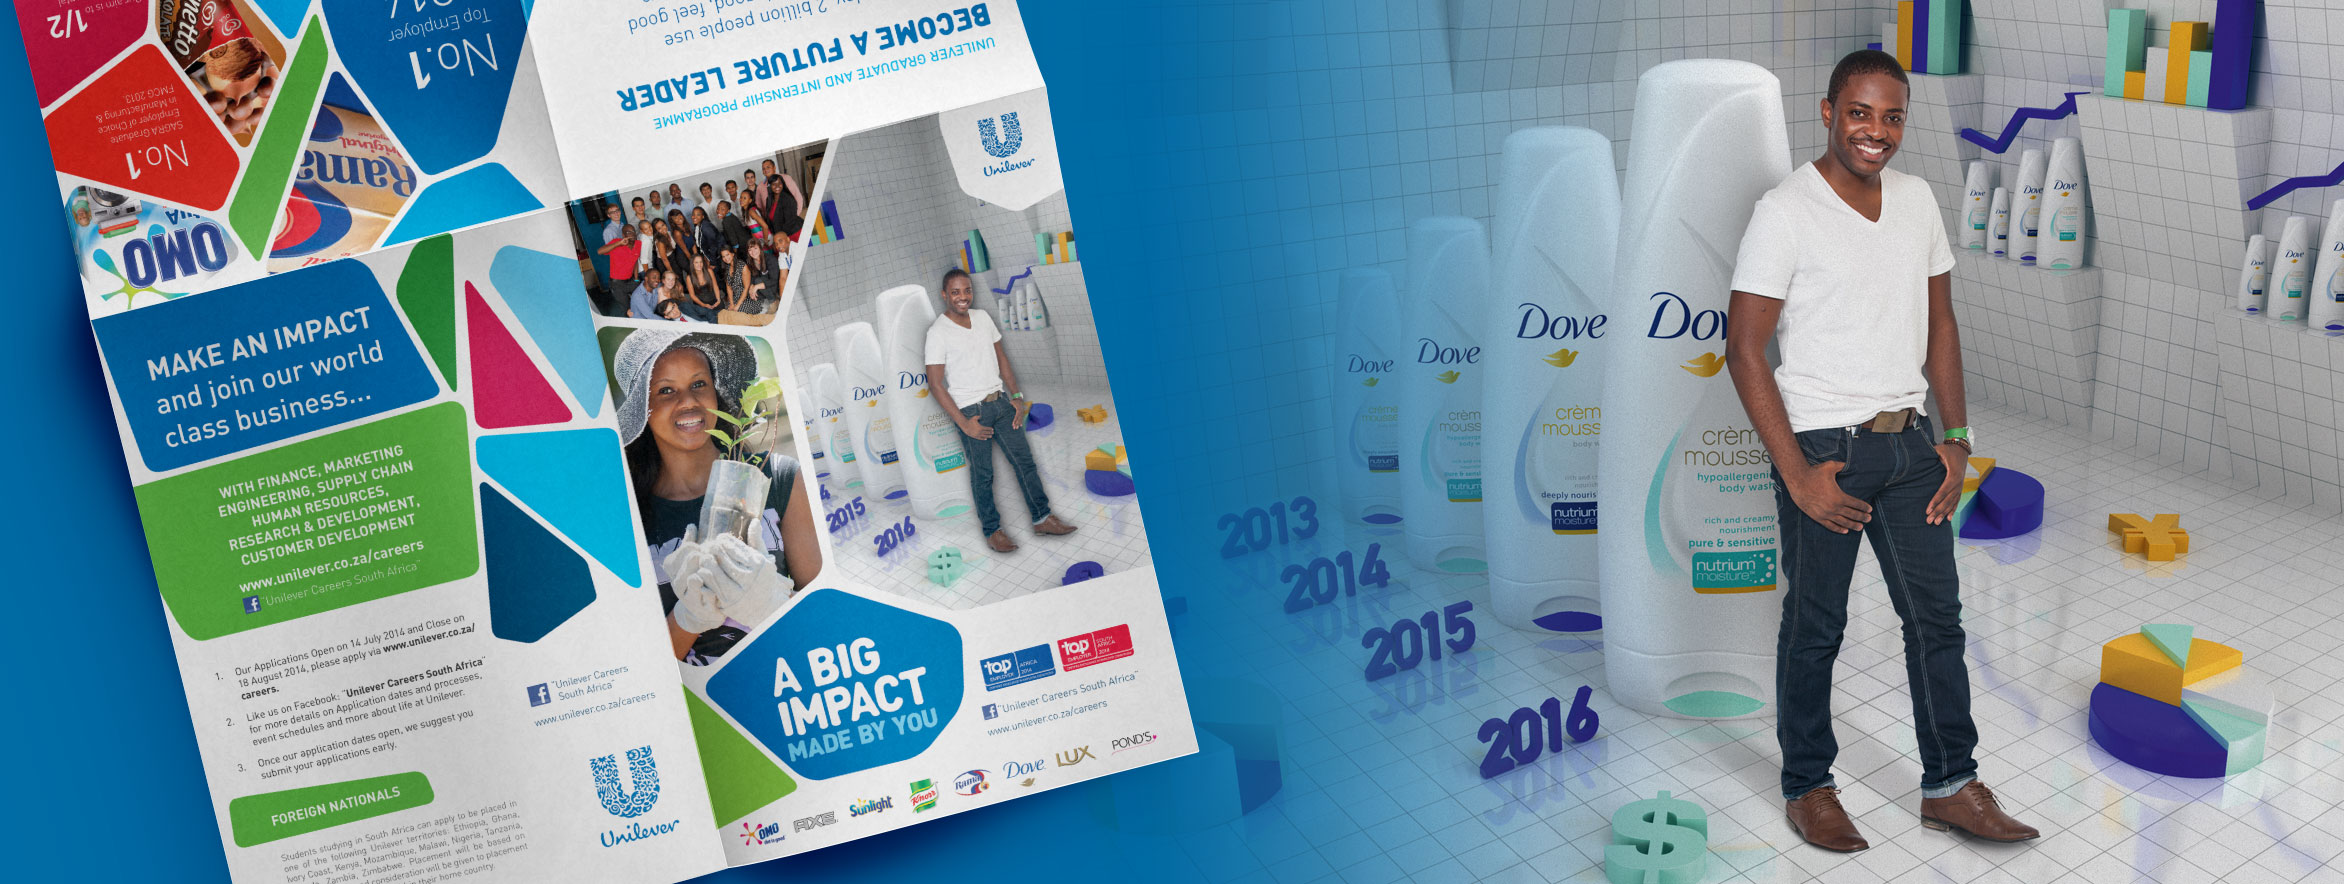 Employer Brand Marketing and graphic design in South Africa example with posters, pullup banners and social media campaign